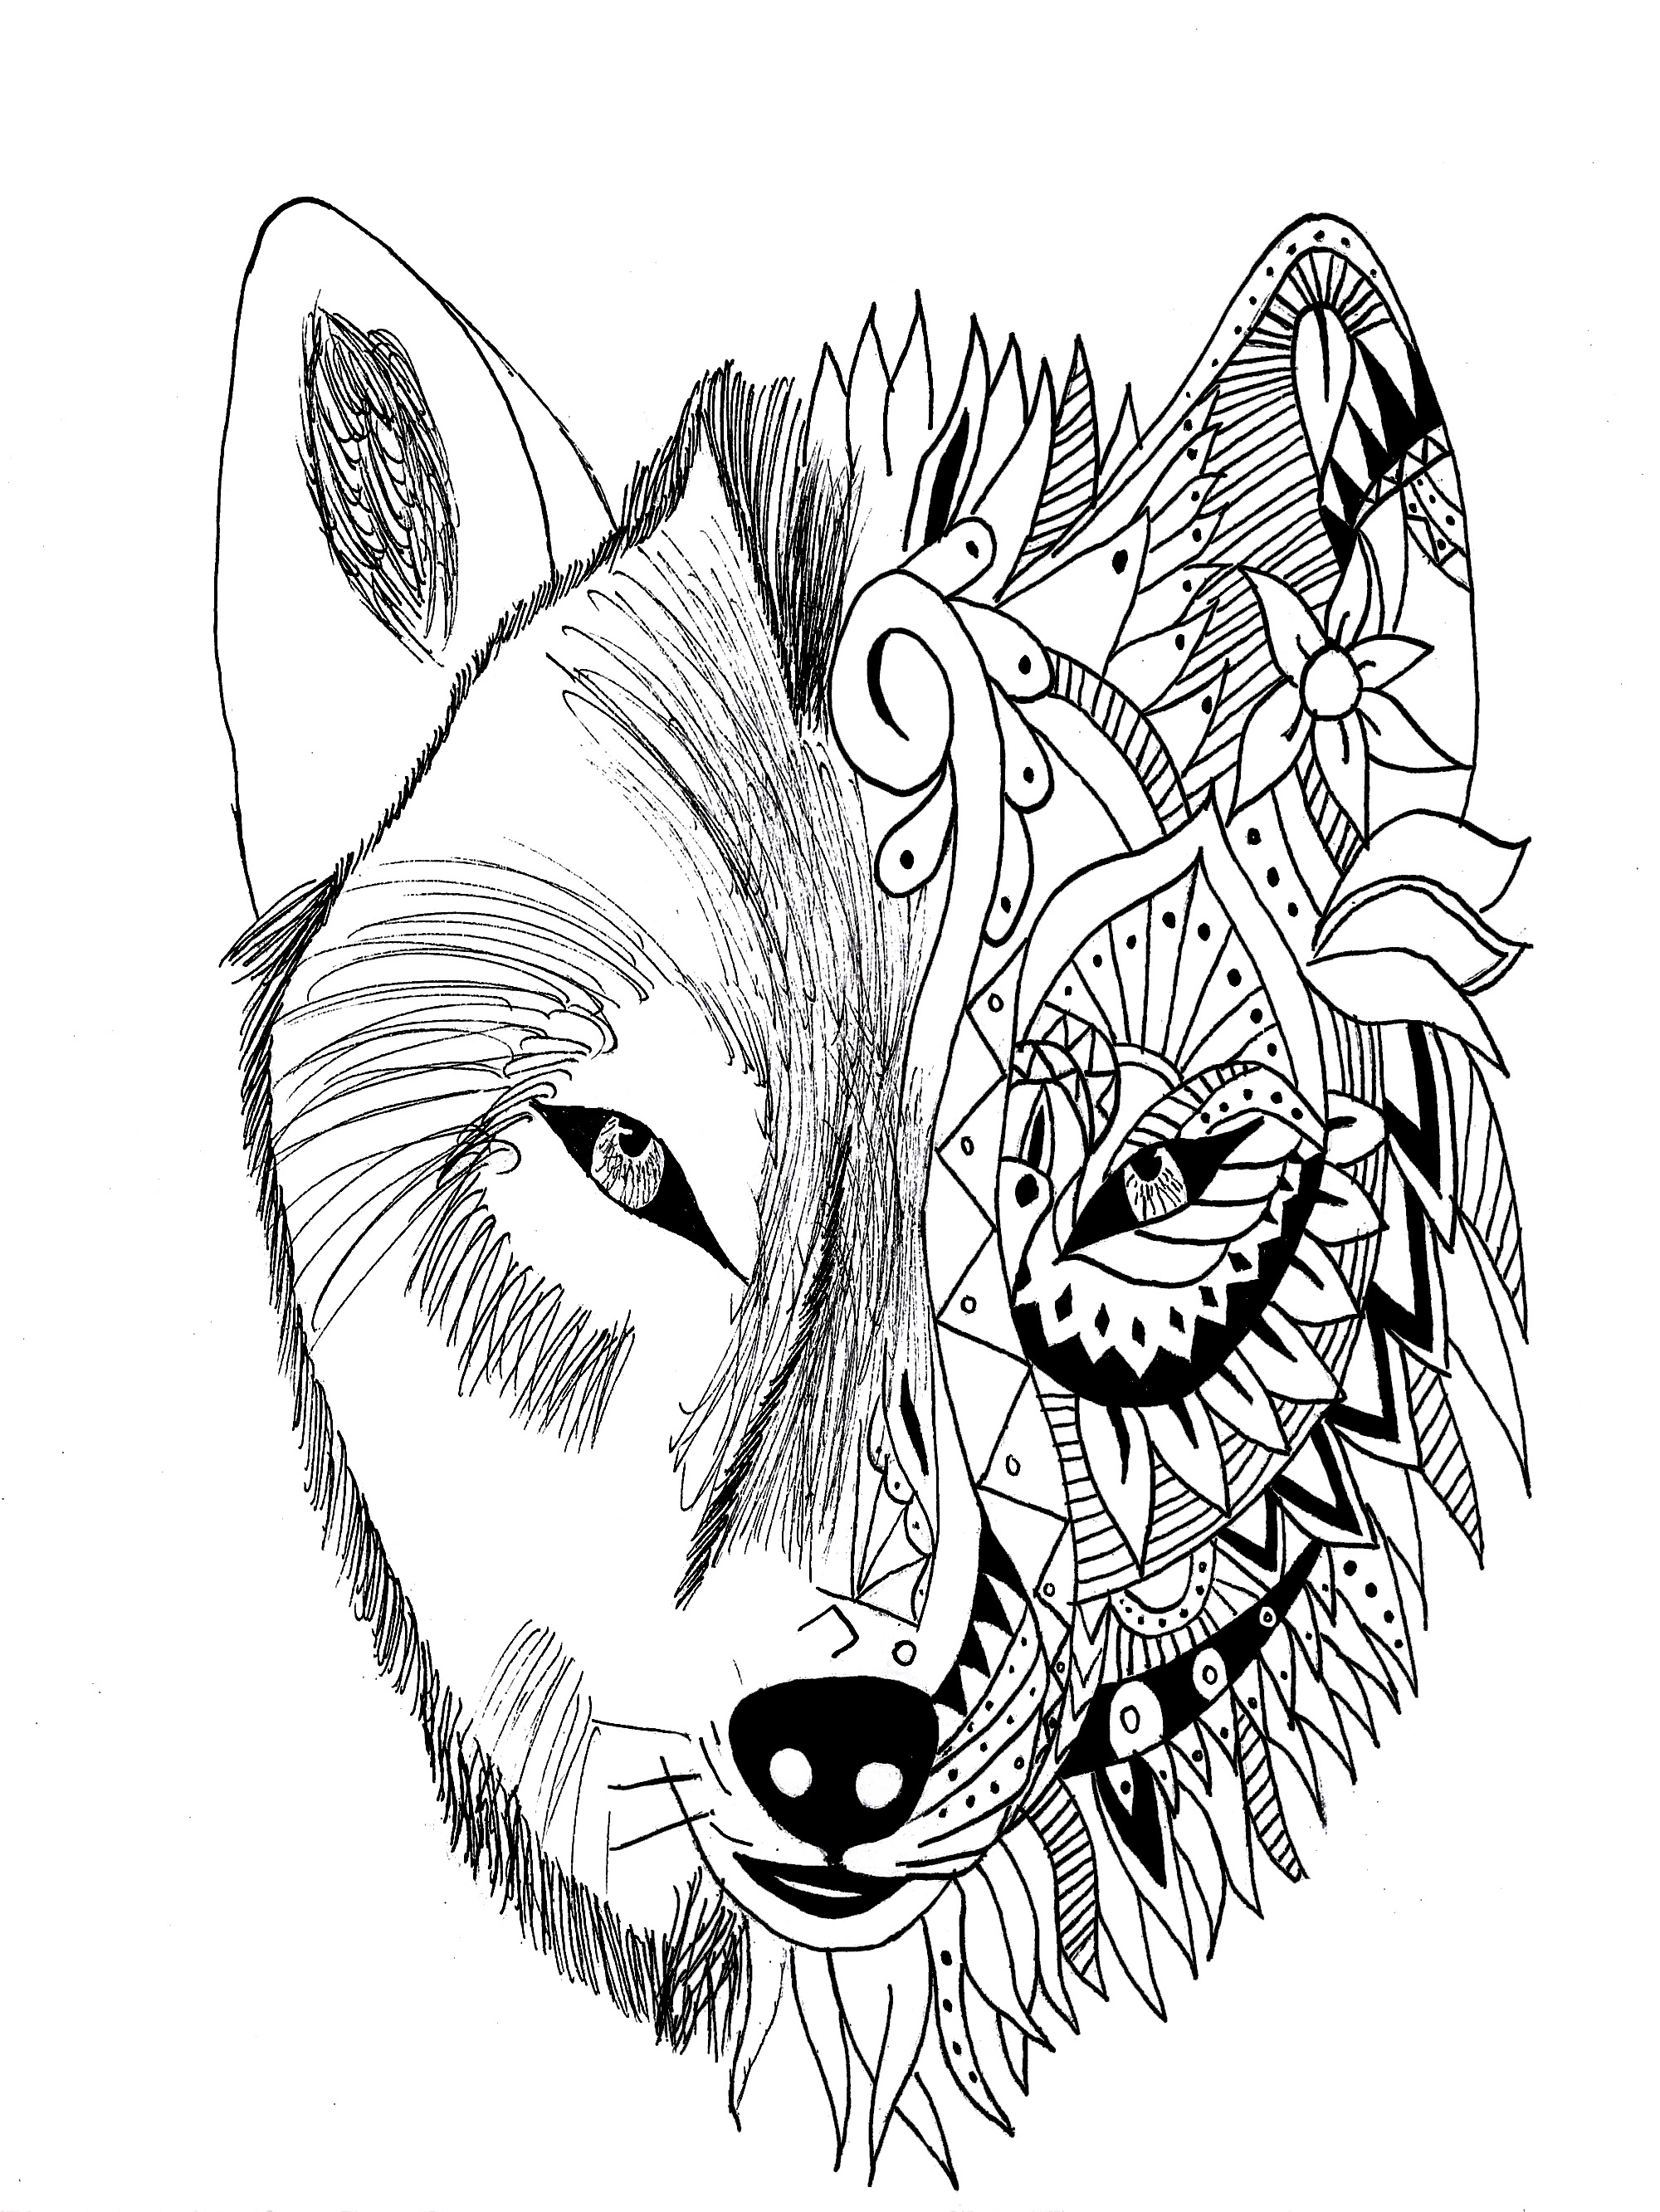 First Rate Tattoo Coloring Pages Printable Tattoos for Adults to to Print Of Wolf Coloring Pages Elegant Free Printable Wolf Coloring Pages for Download